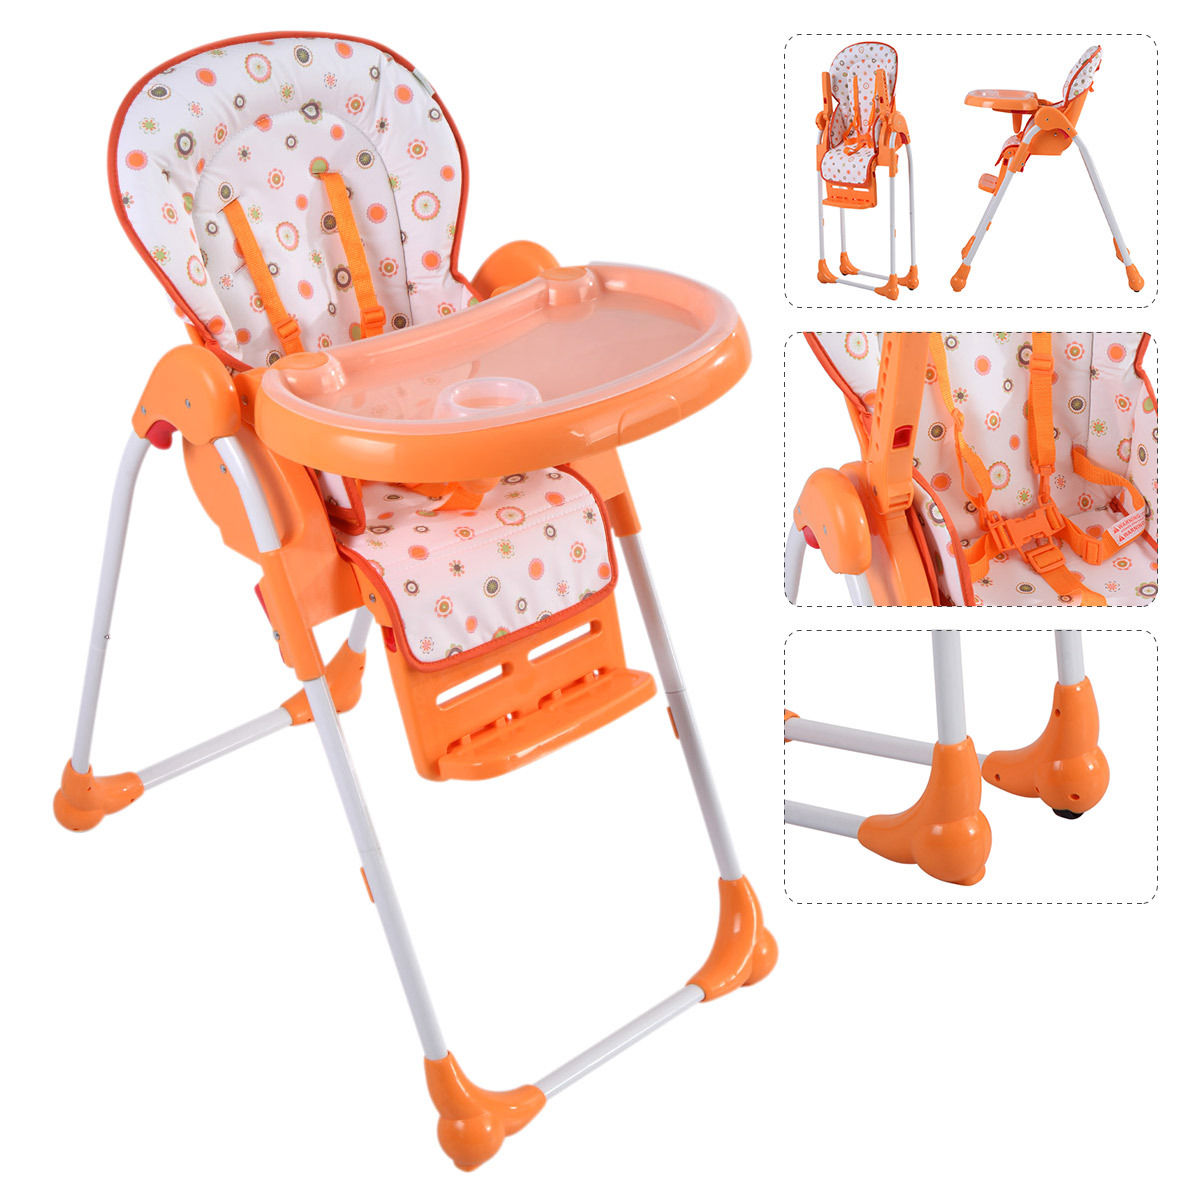 Adjustable Baby High Chair Infant Toddler Feeding Booster Seat Folding Orang